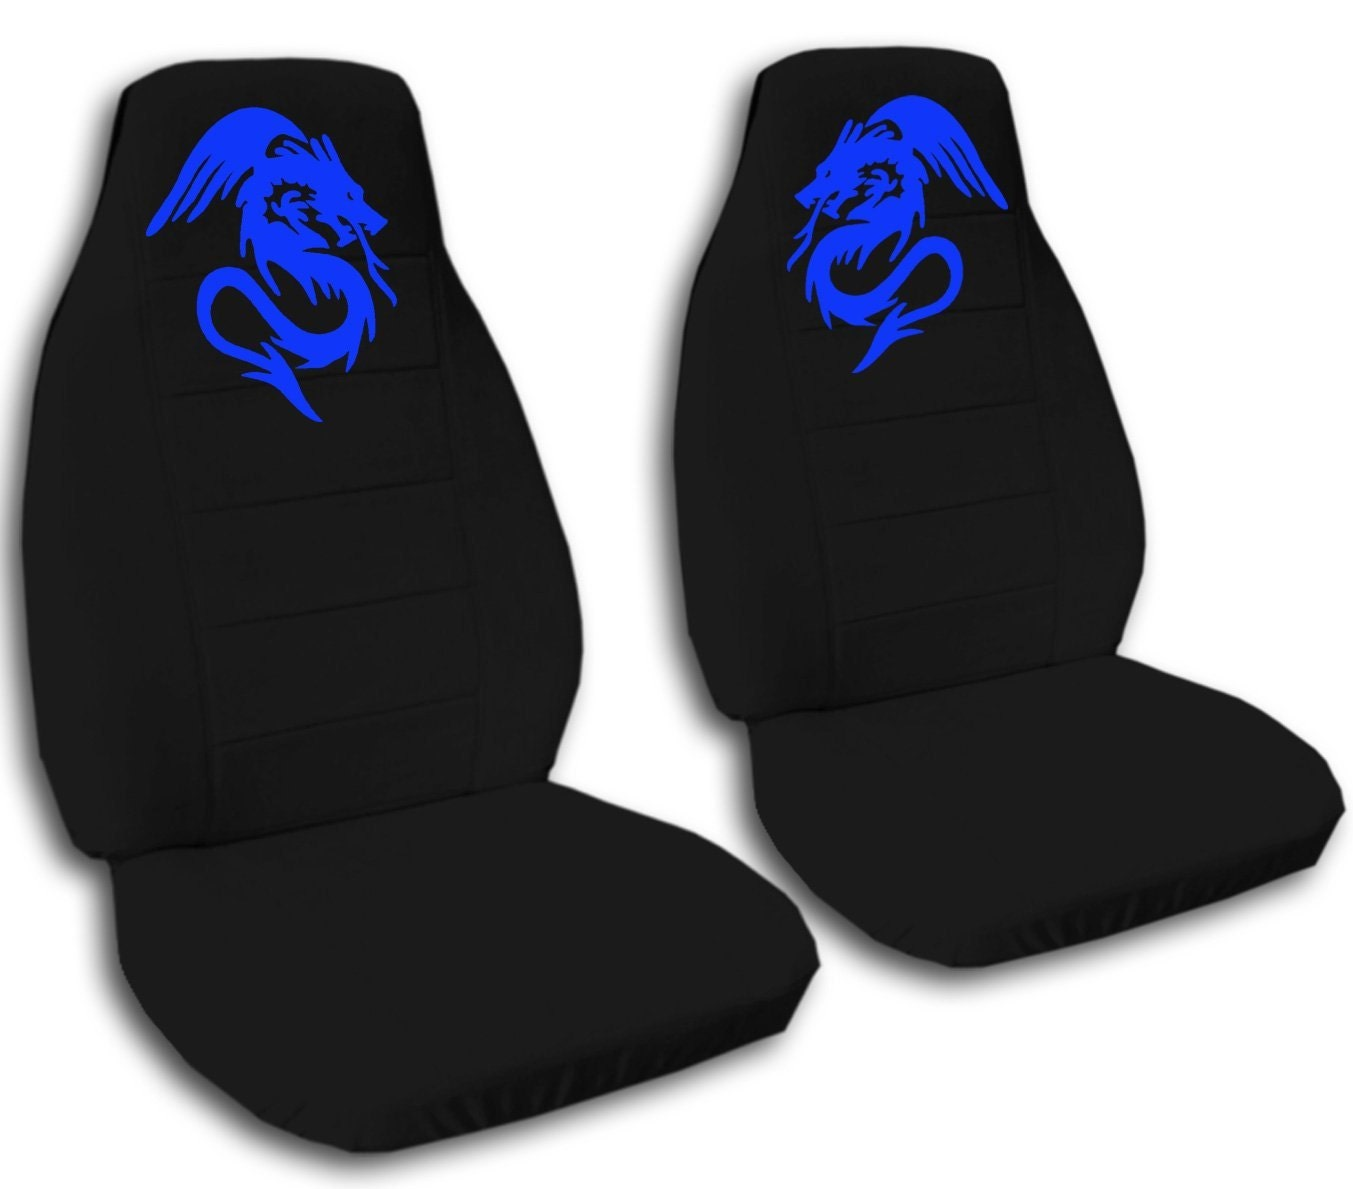 dragon car seat covers many by designcarseatcovers on etsy. Black Bedroom Furniture Sets. Home Design Ideas